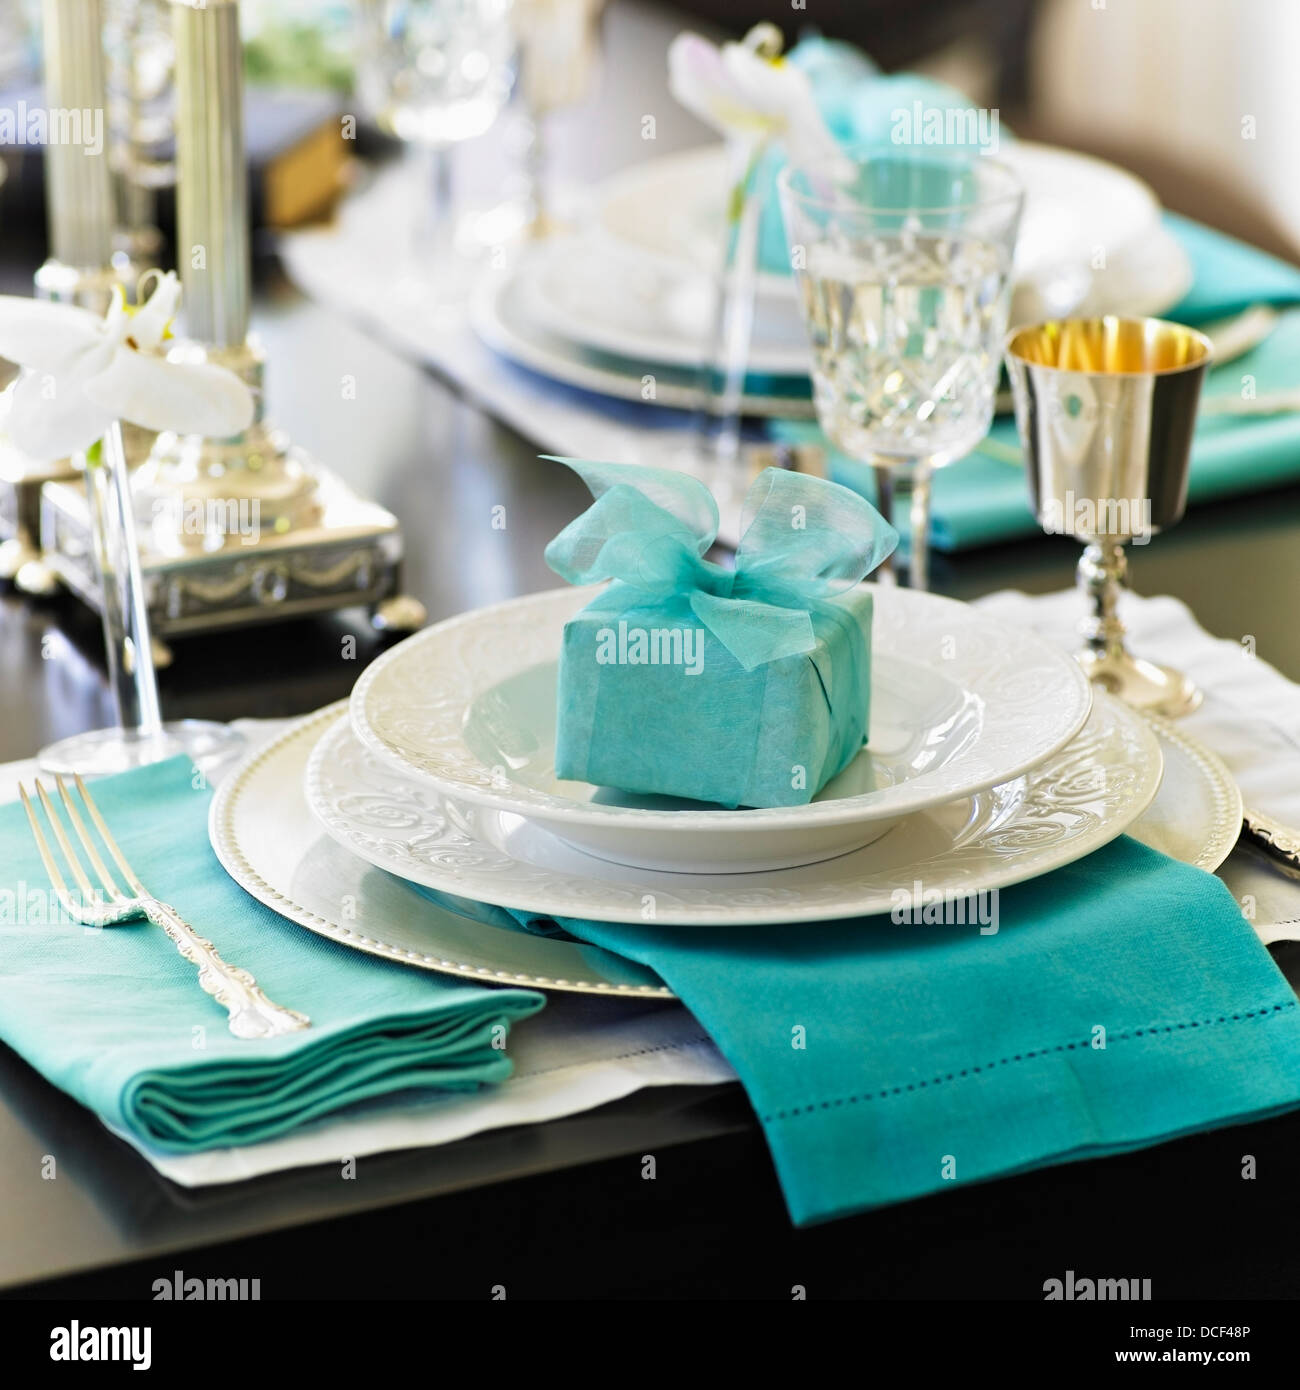 Formal table setting with white dishes and blue gift and napkins;Victoria vancouver island british columbia canada & Formal table setting with white dishes and blue gift and Stock Photo ...